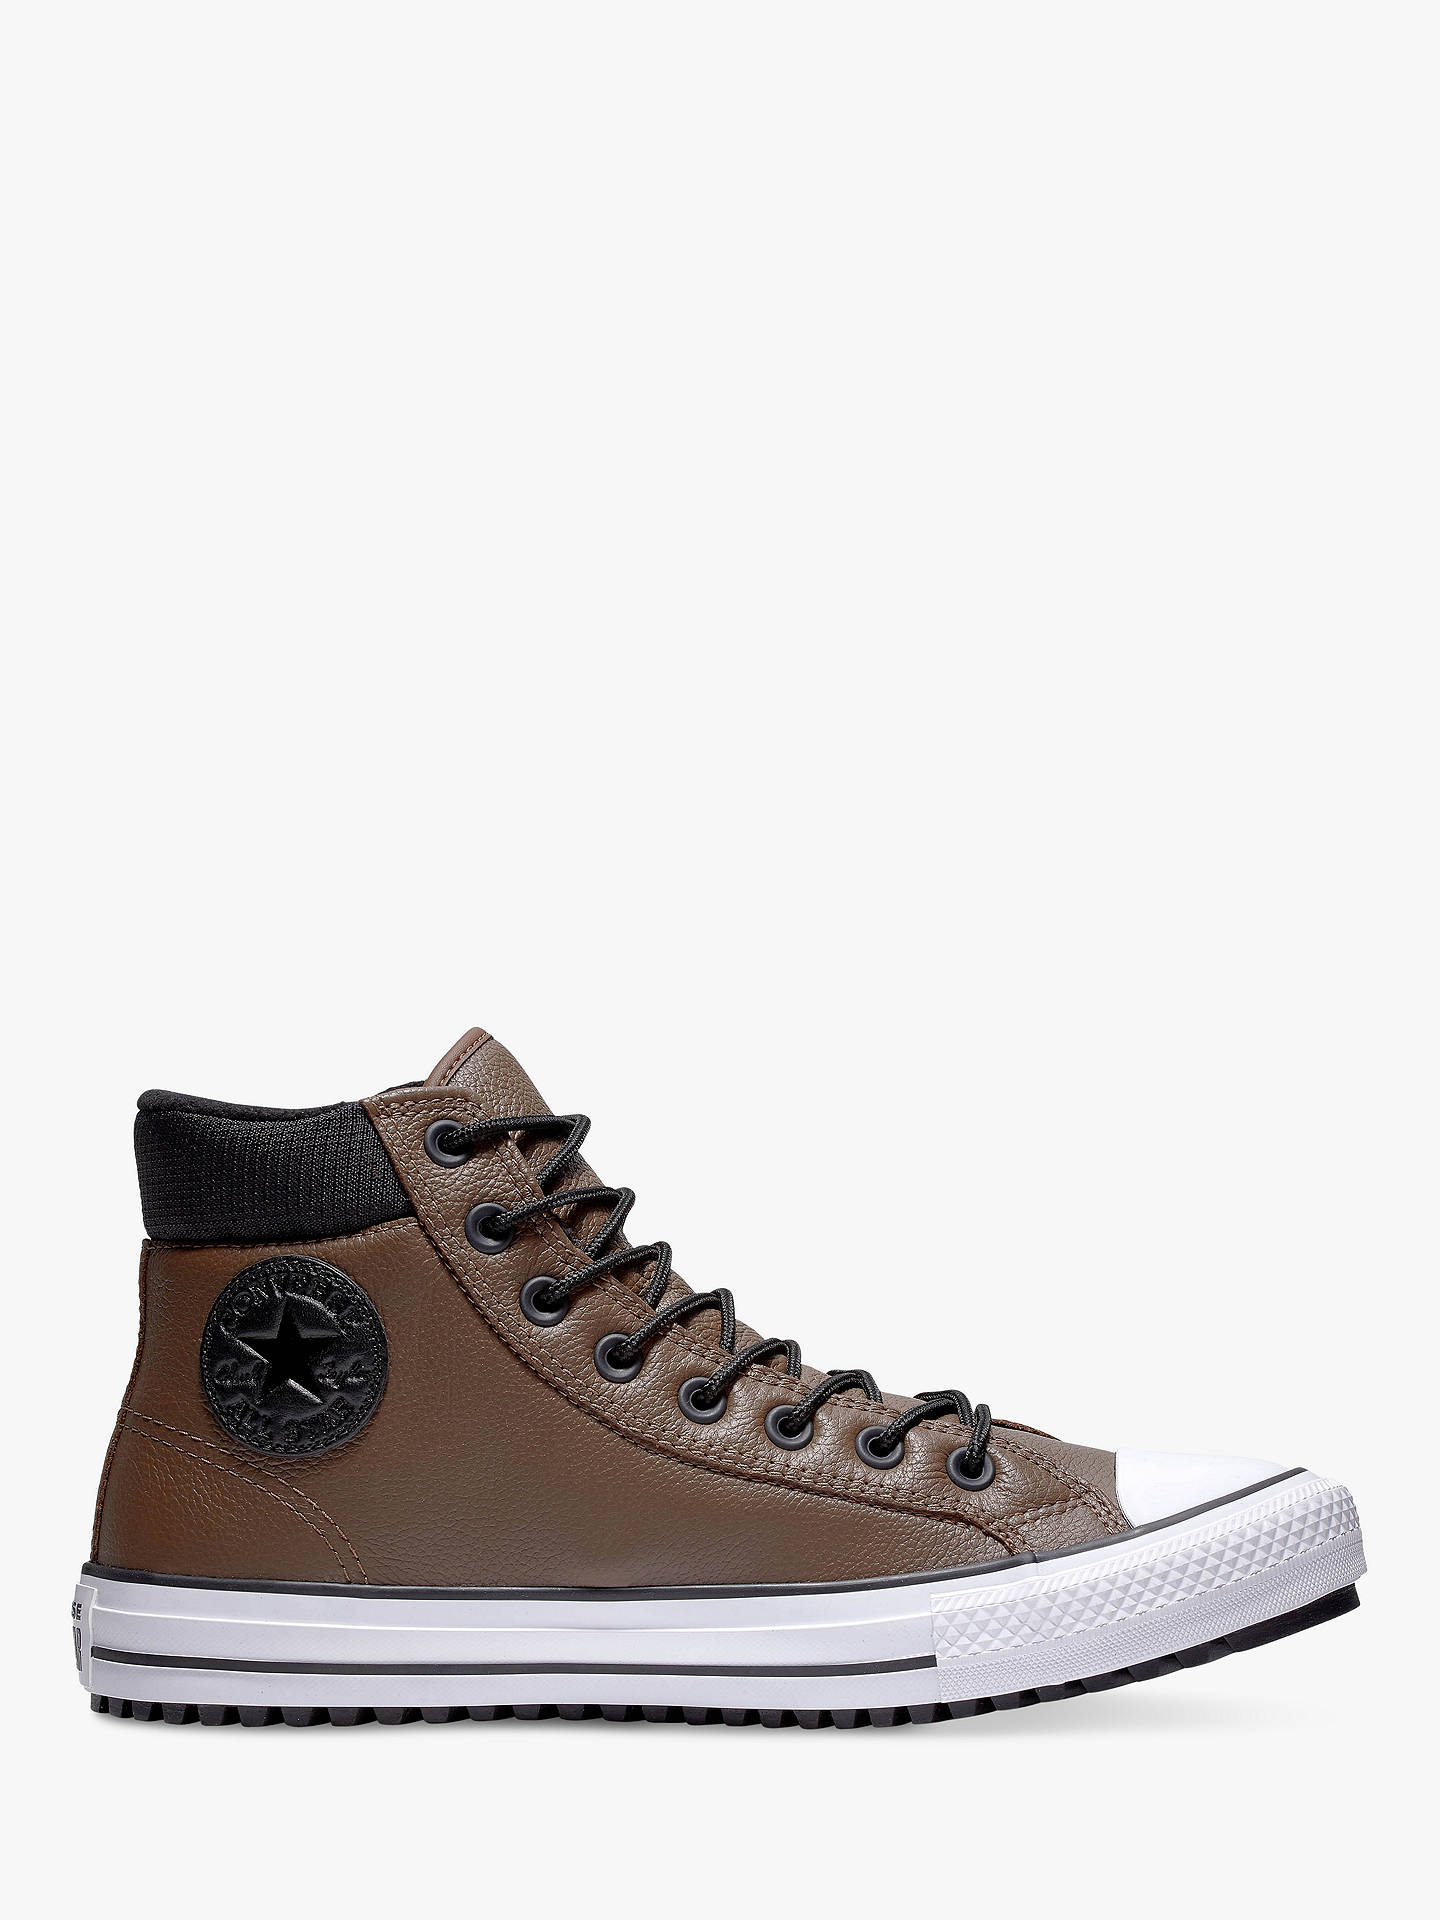 3c4b9a44d21 Converse Chuck Taylor All Star PC Leather High Top